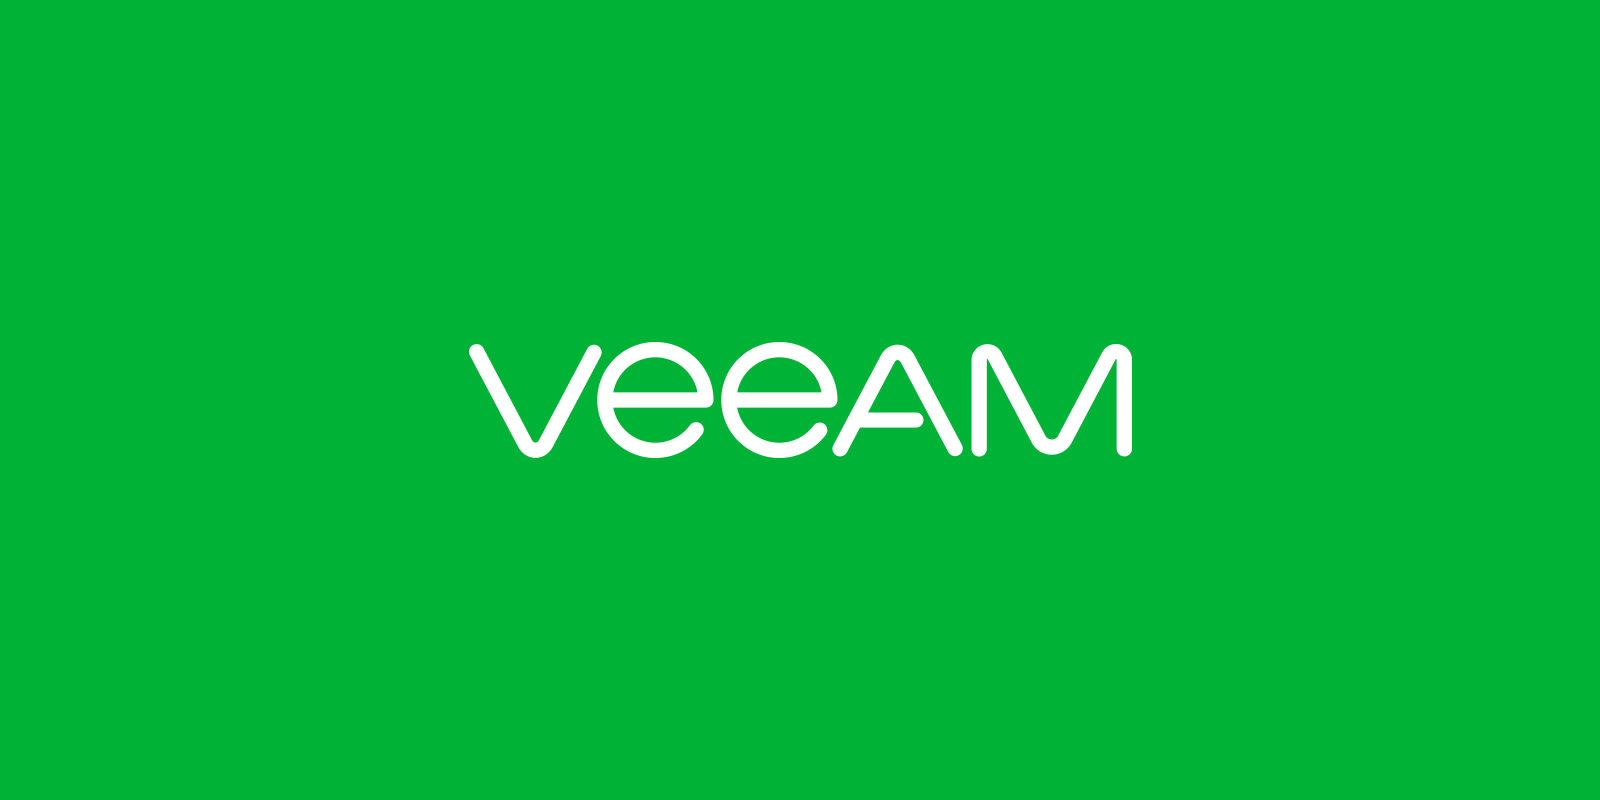 Application-Aware Processing - Veeam Backup Guide for vSphere